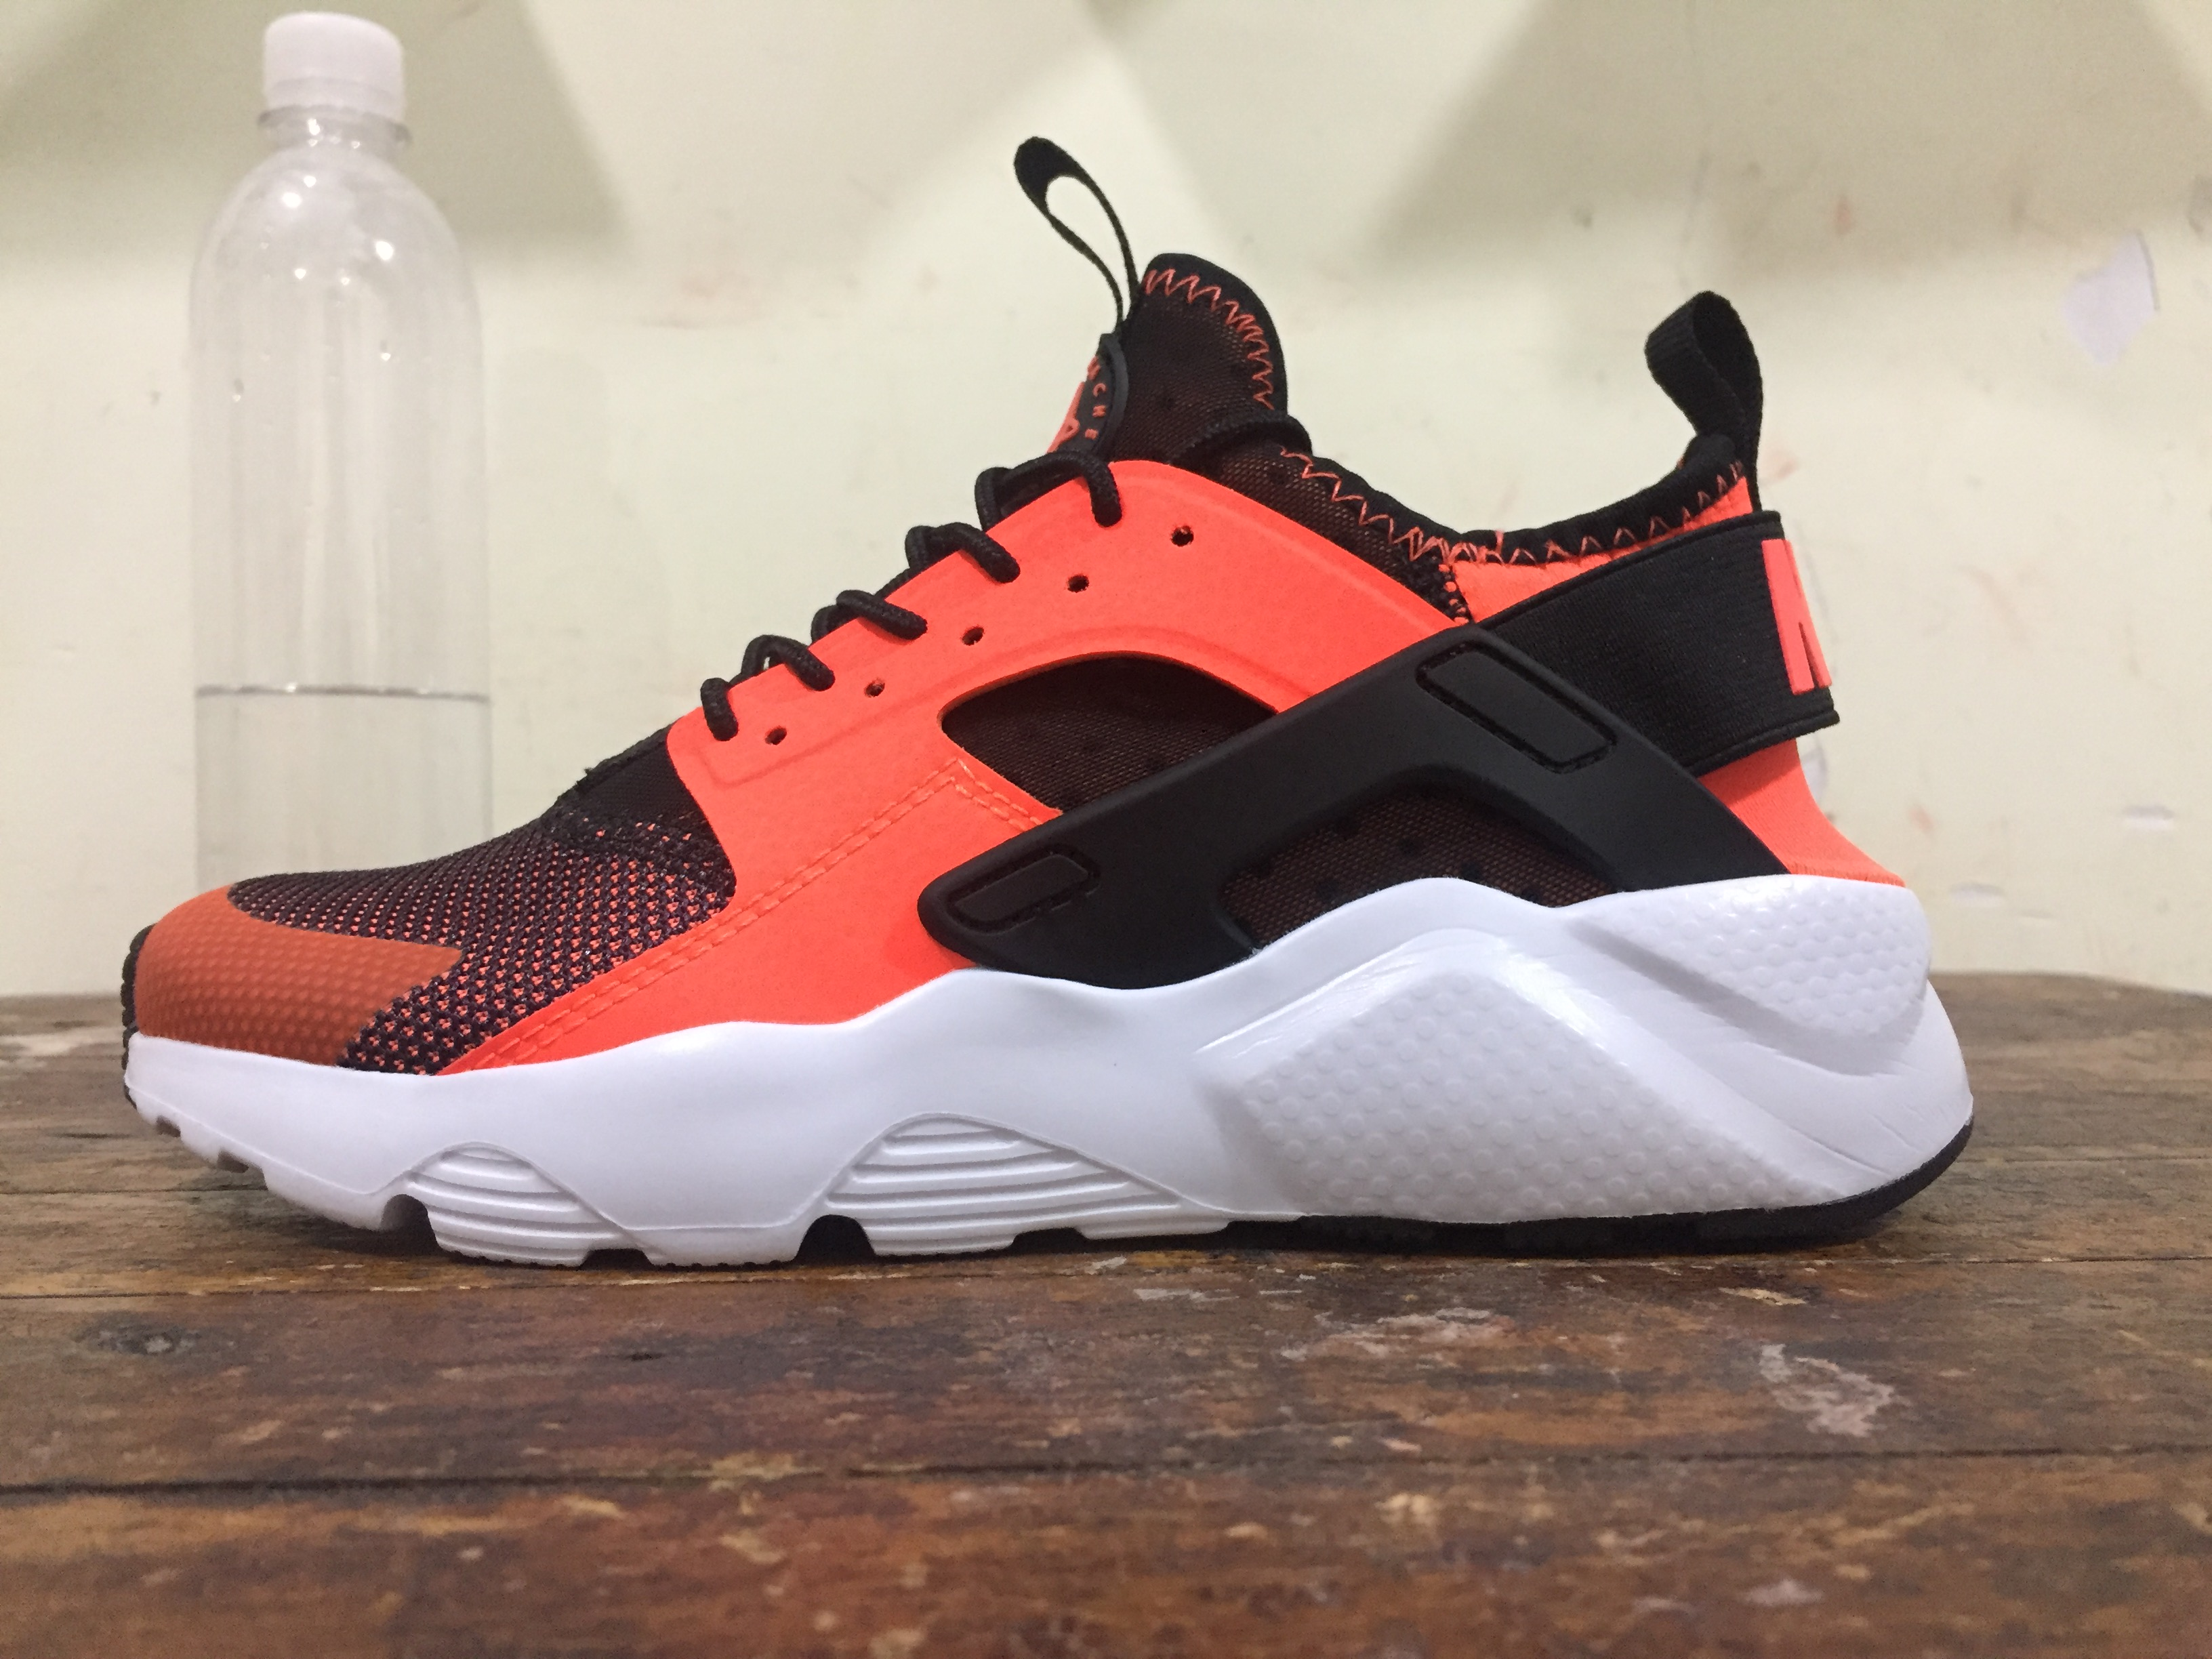 c3c24d1dd53ec ... czech nike air huarache run ultra orange. u2039 u203a 5360e 6f018